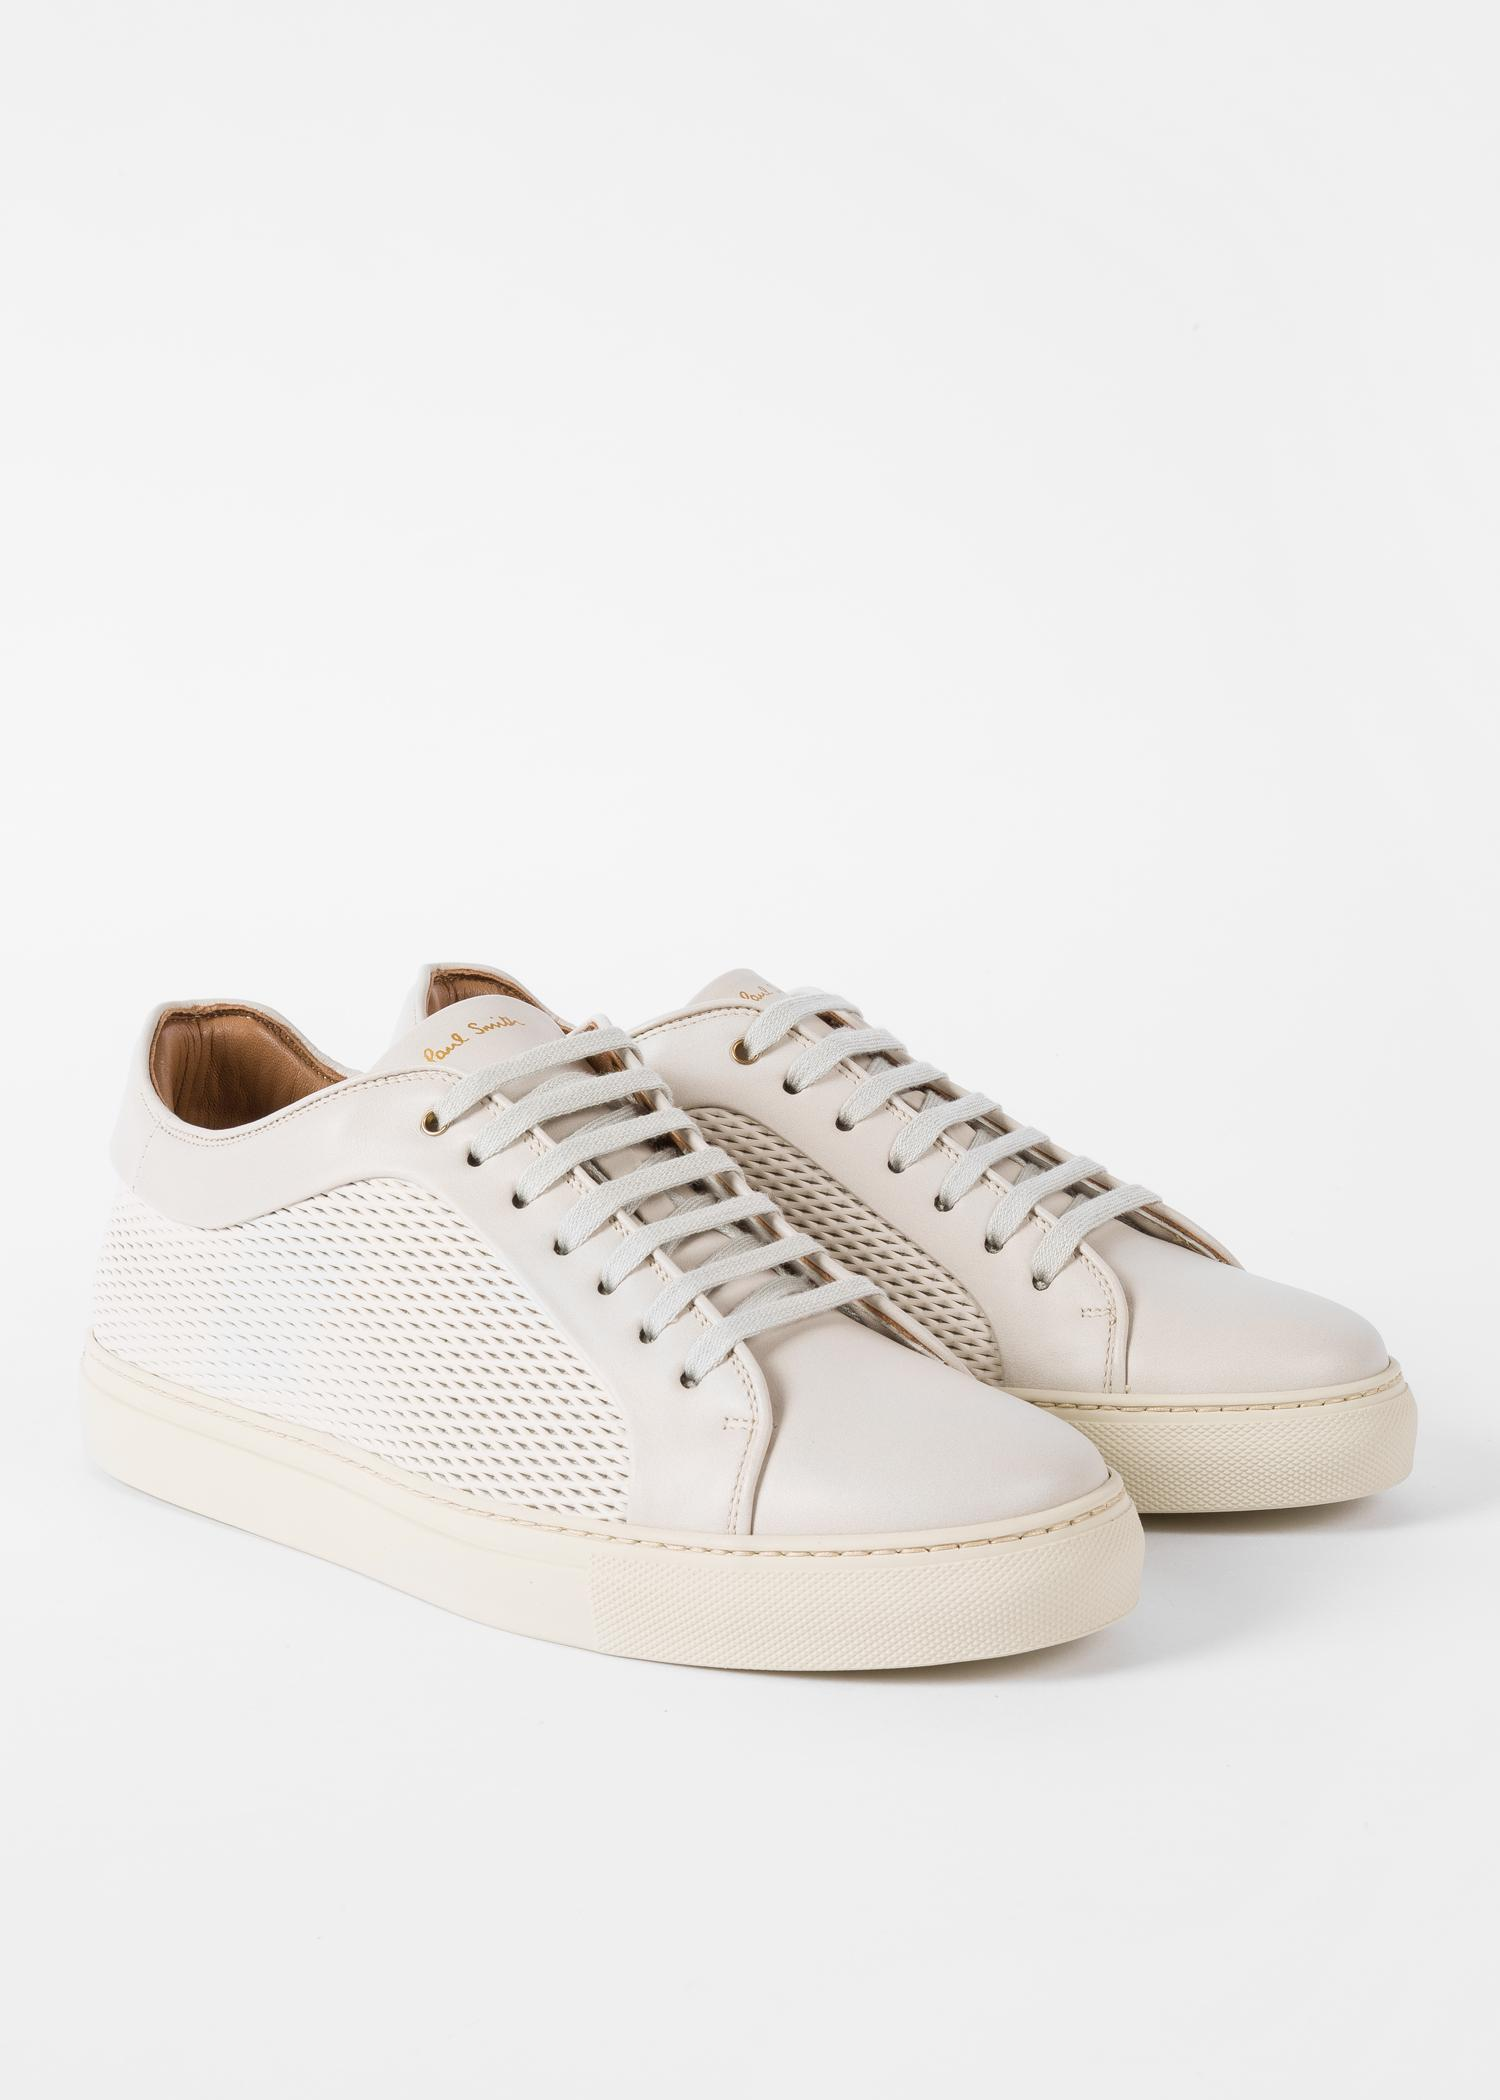 Paul Smith Men's Off-white Mesh-effect Leather 'basso' Trainers